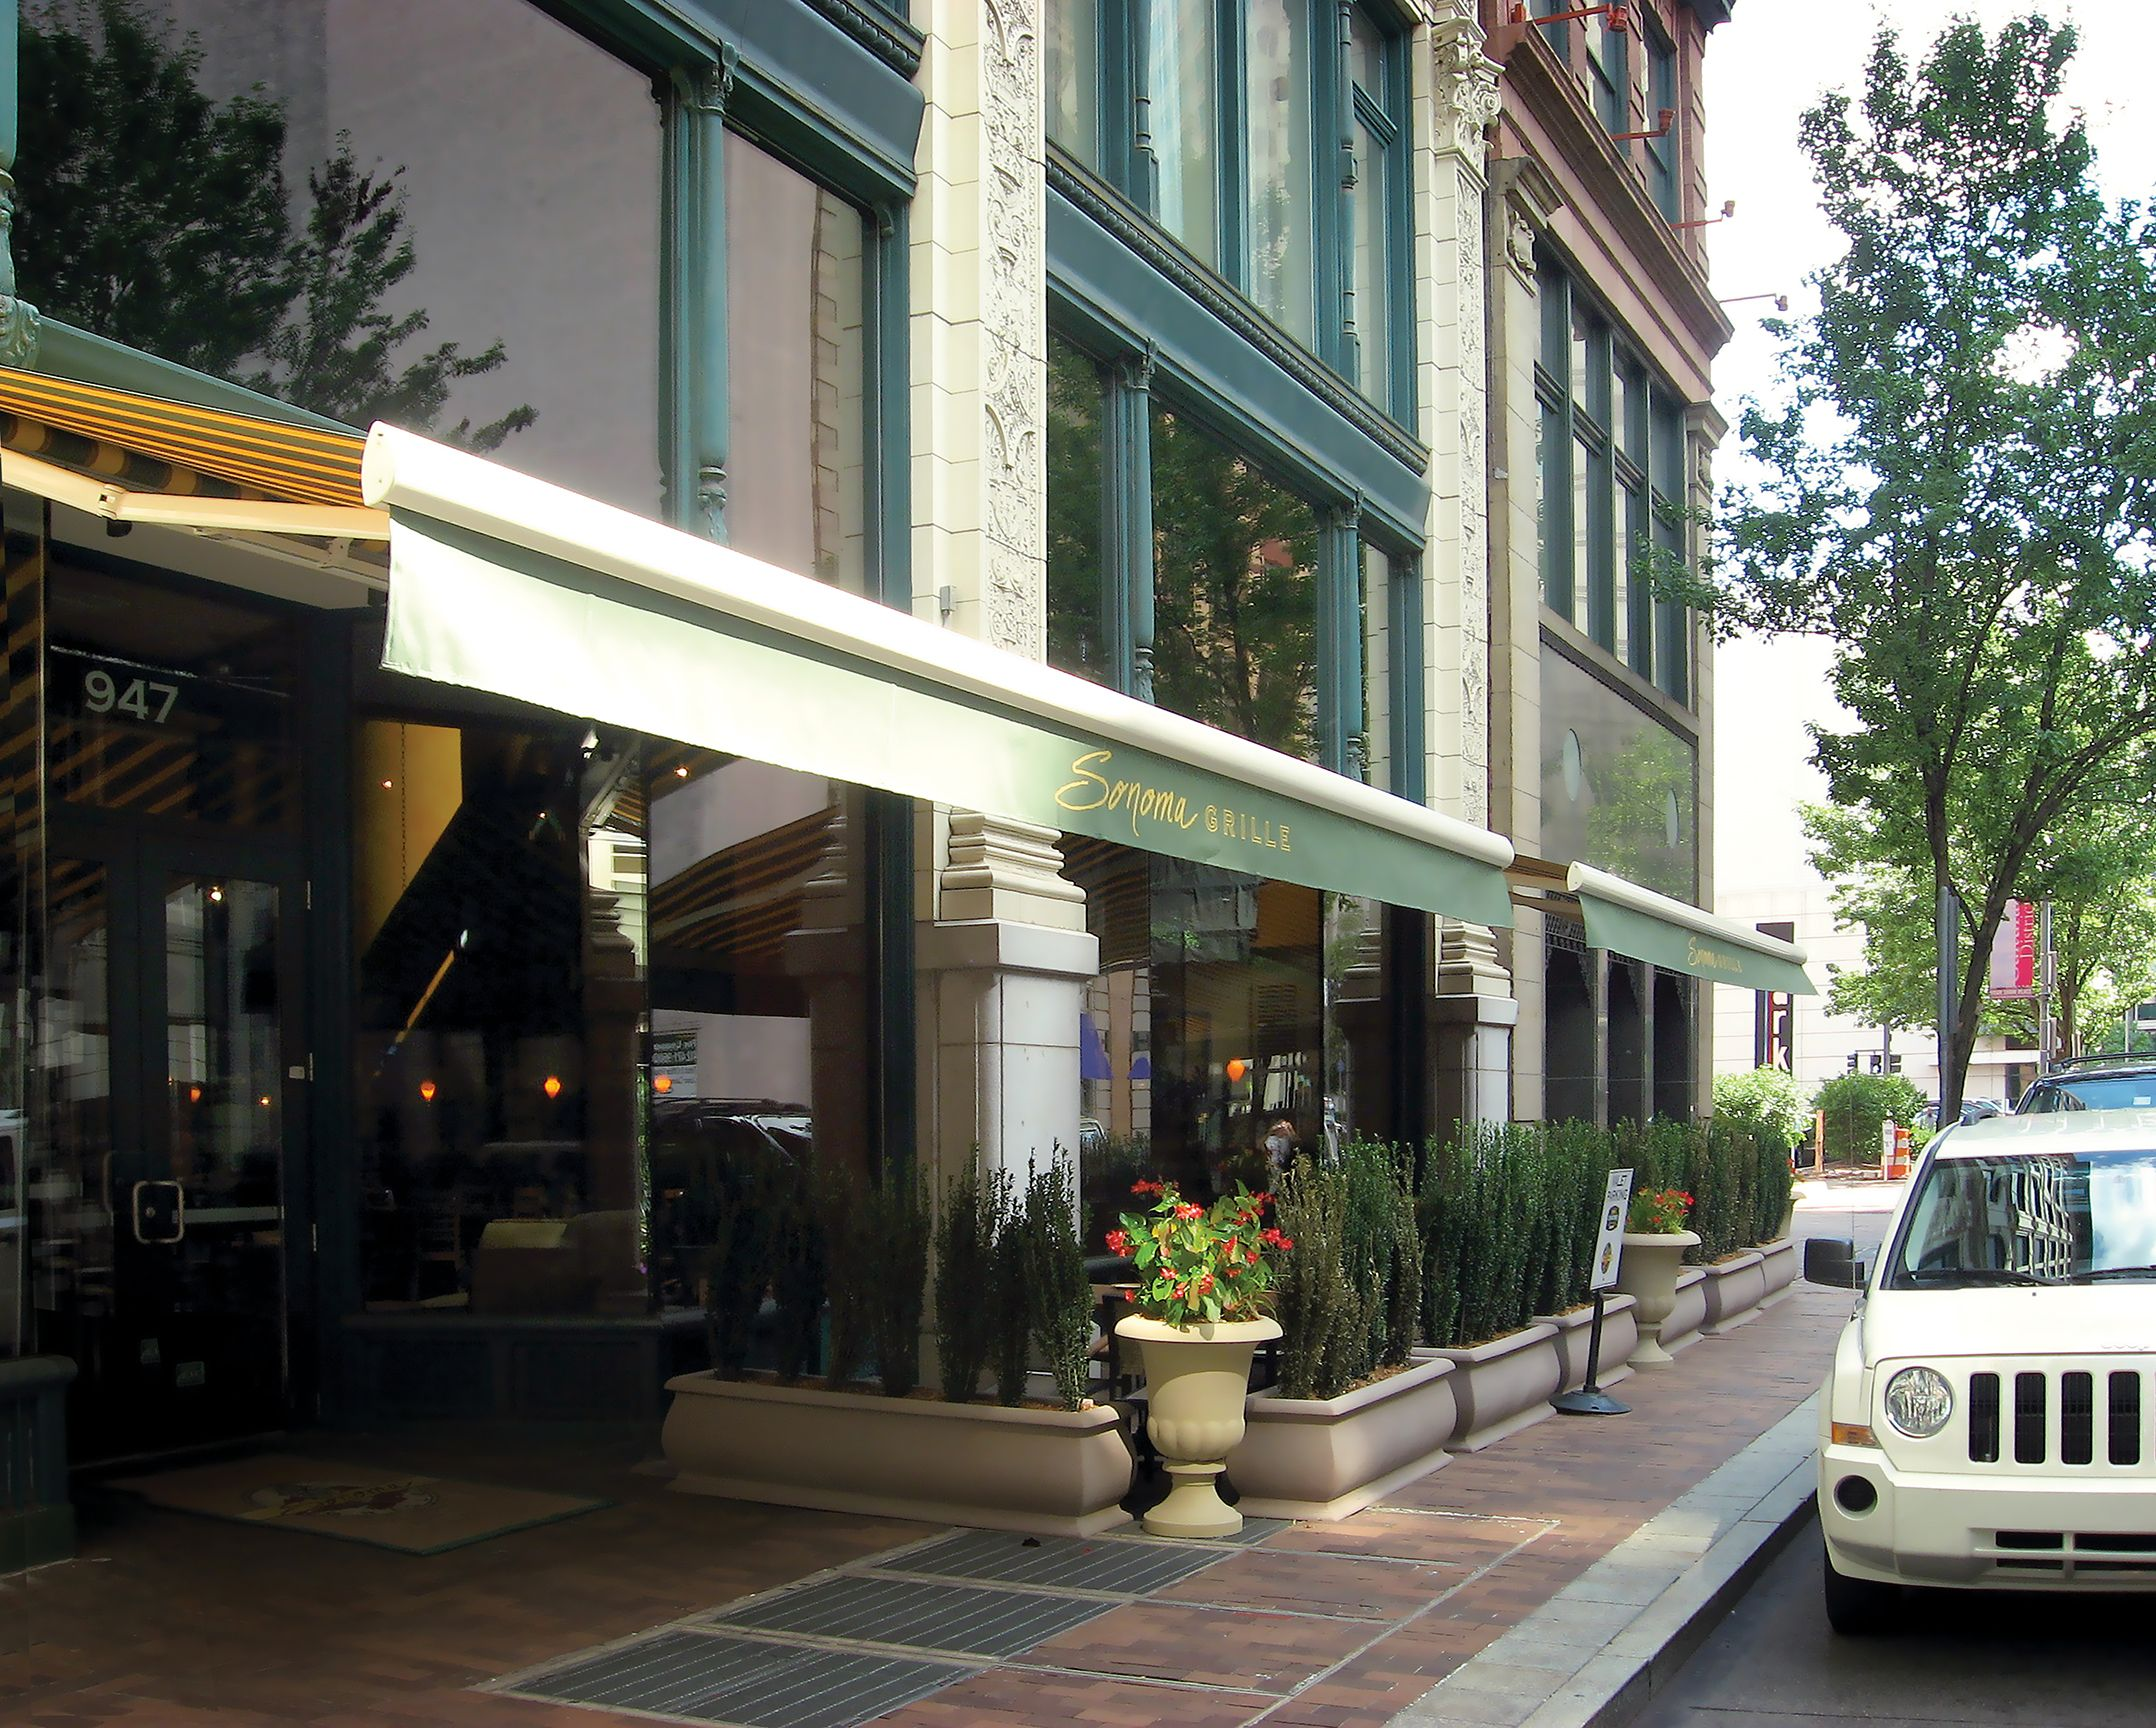 This Upscale Pittsburgh Restaurant Chose NuImage Prou0027s Commercial Grade  Series G250 Retractable Awning To Provide